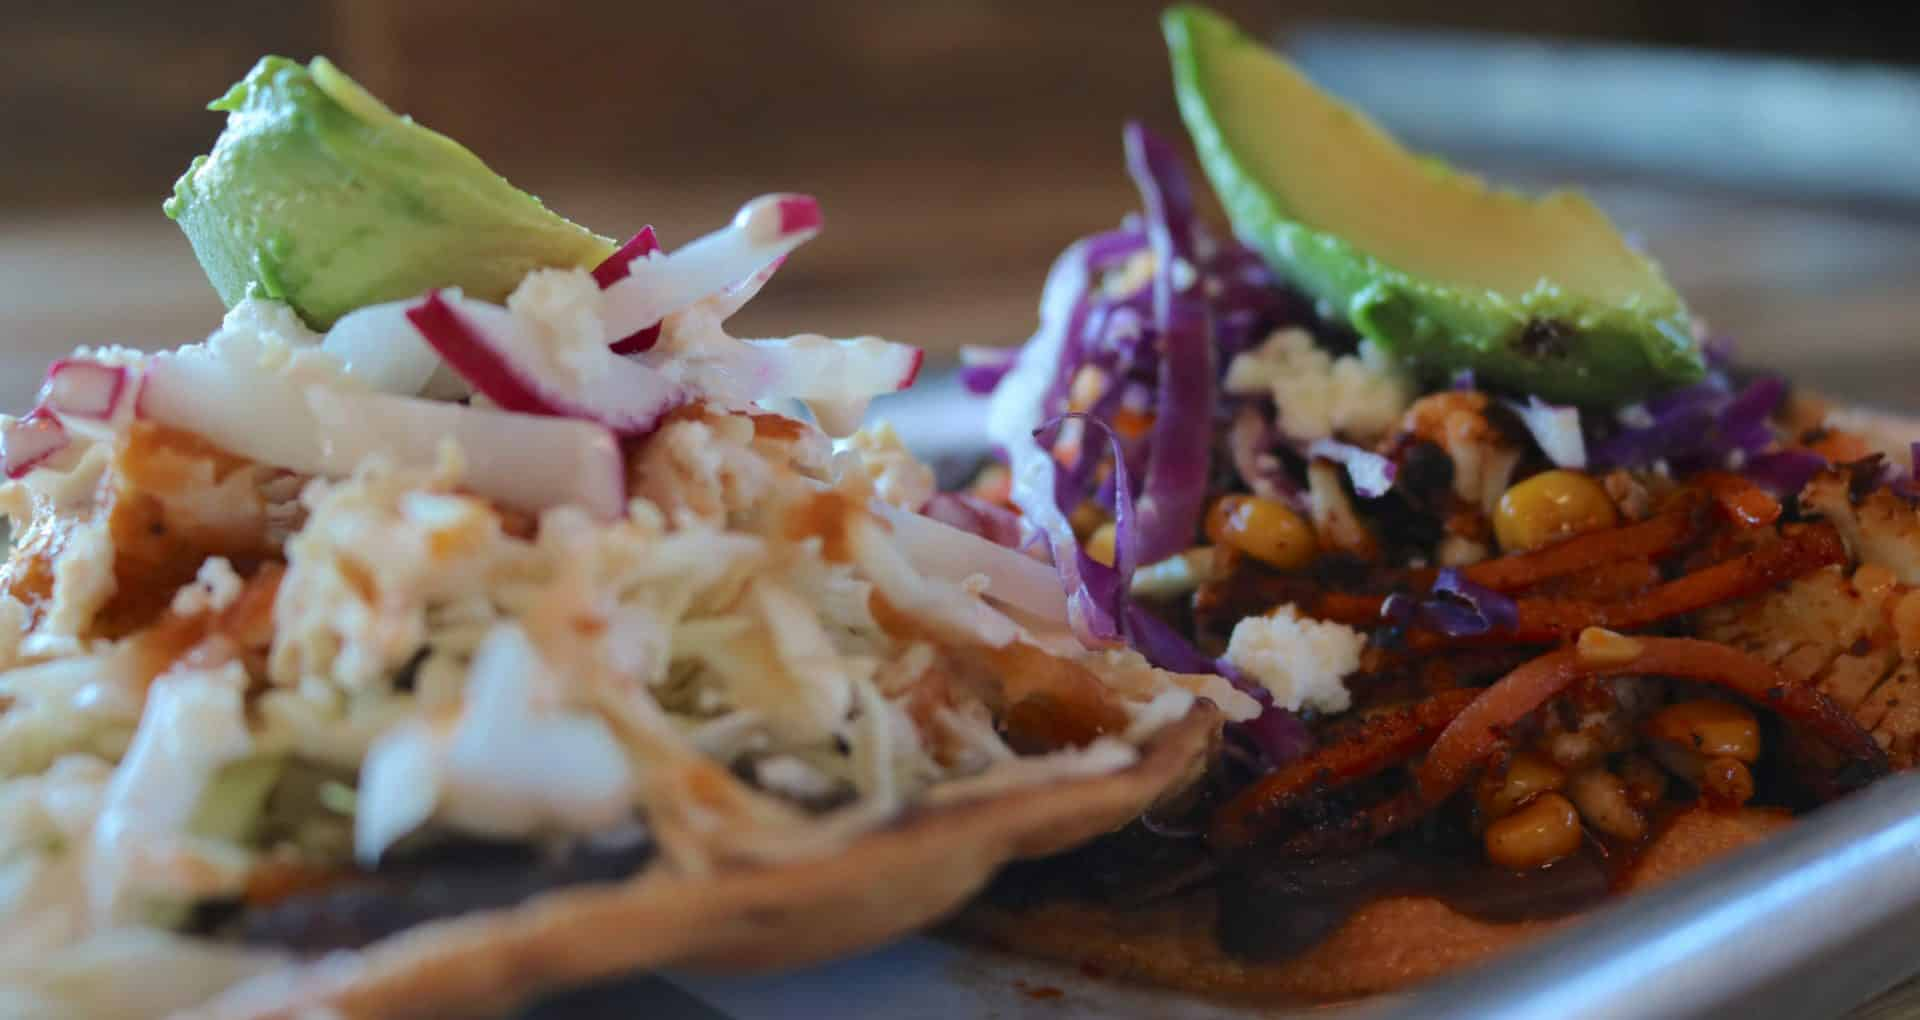 Texas Serves the Best Tacos in America